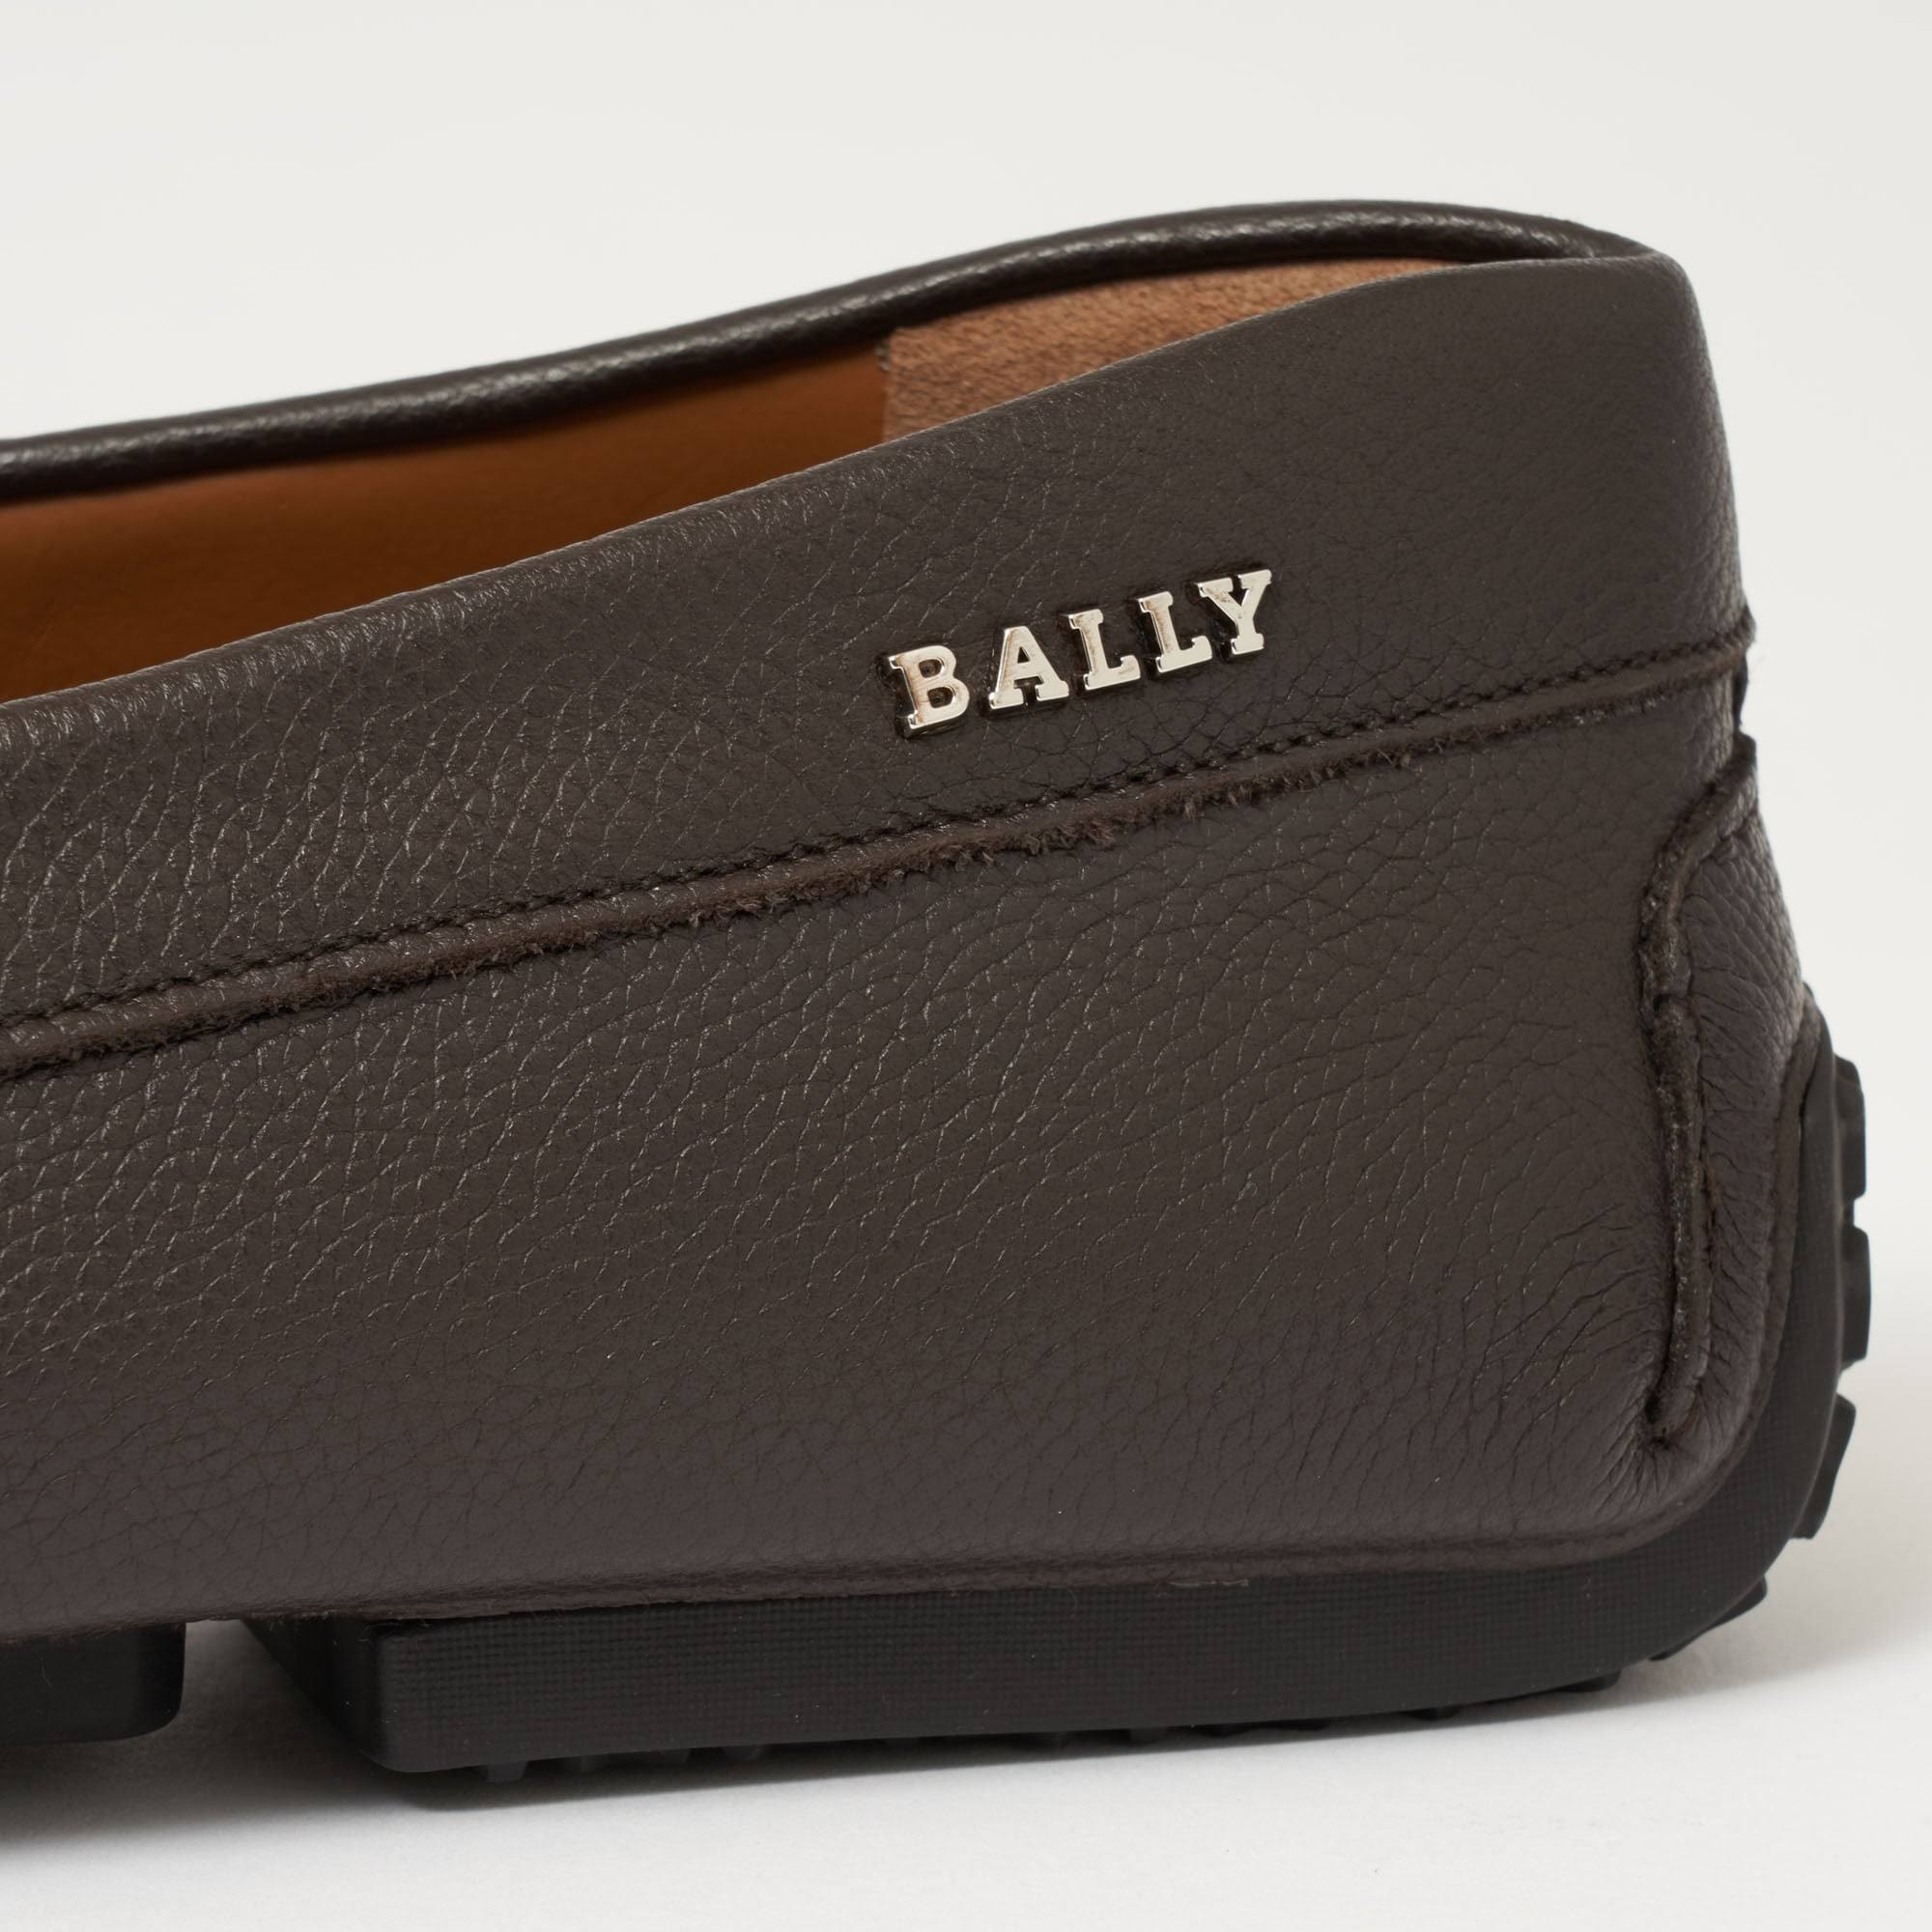 5 6 Safari Safari Farbe Bally Braun Größe Uk Pearce Driver Leather 6206928 xUUv1Bz